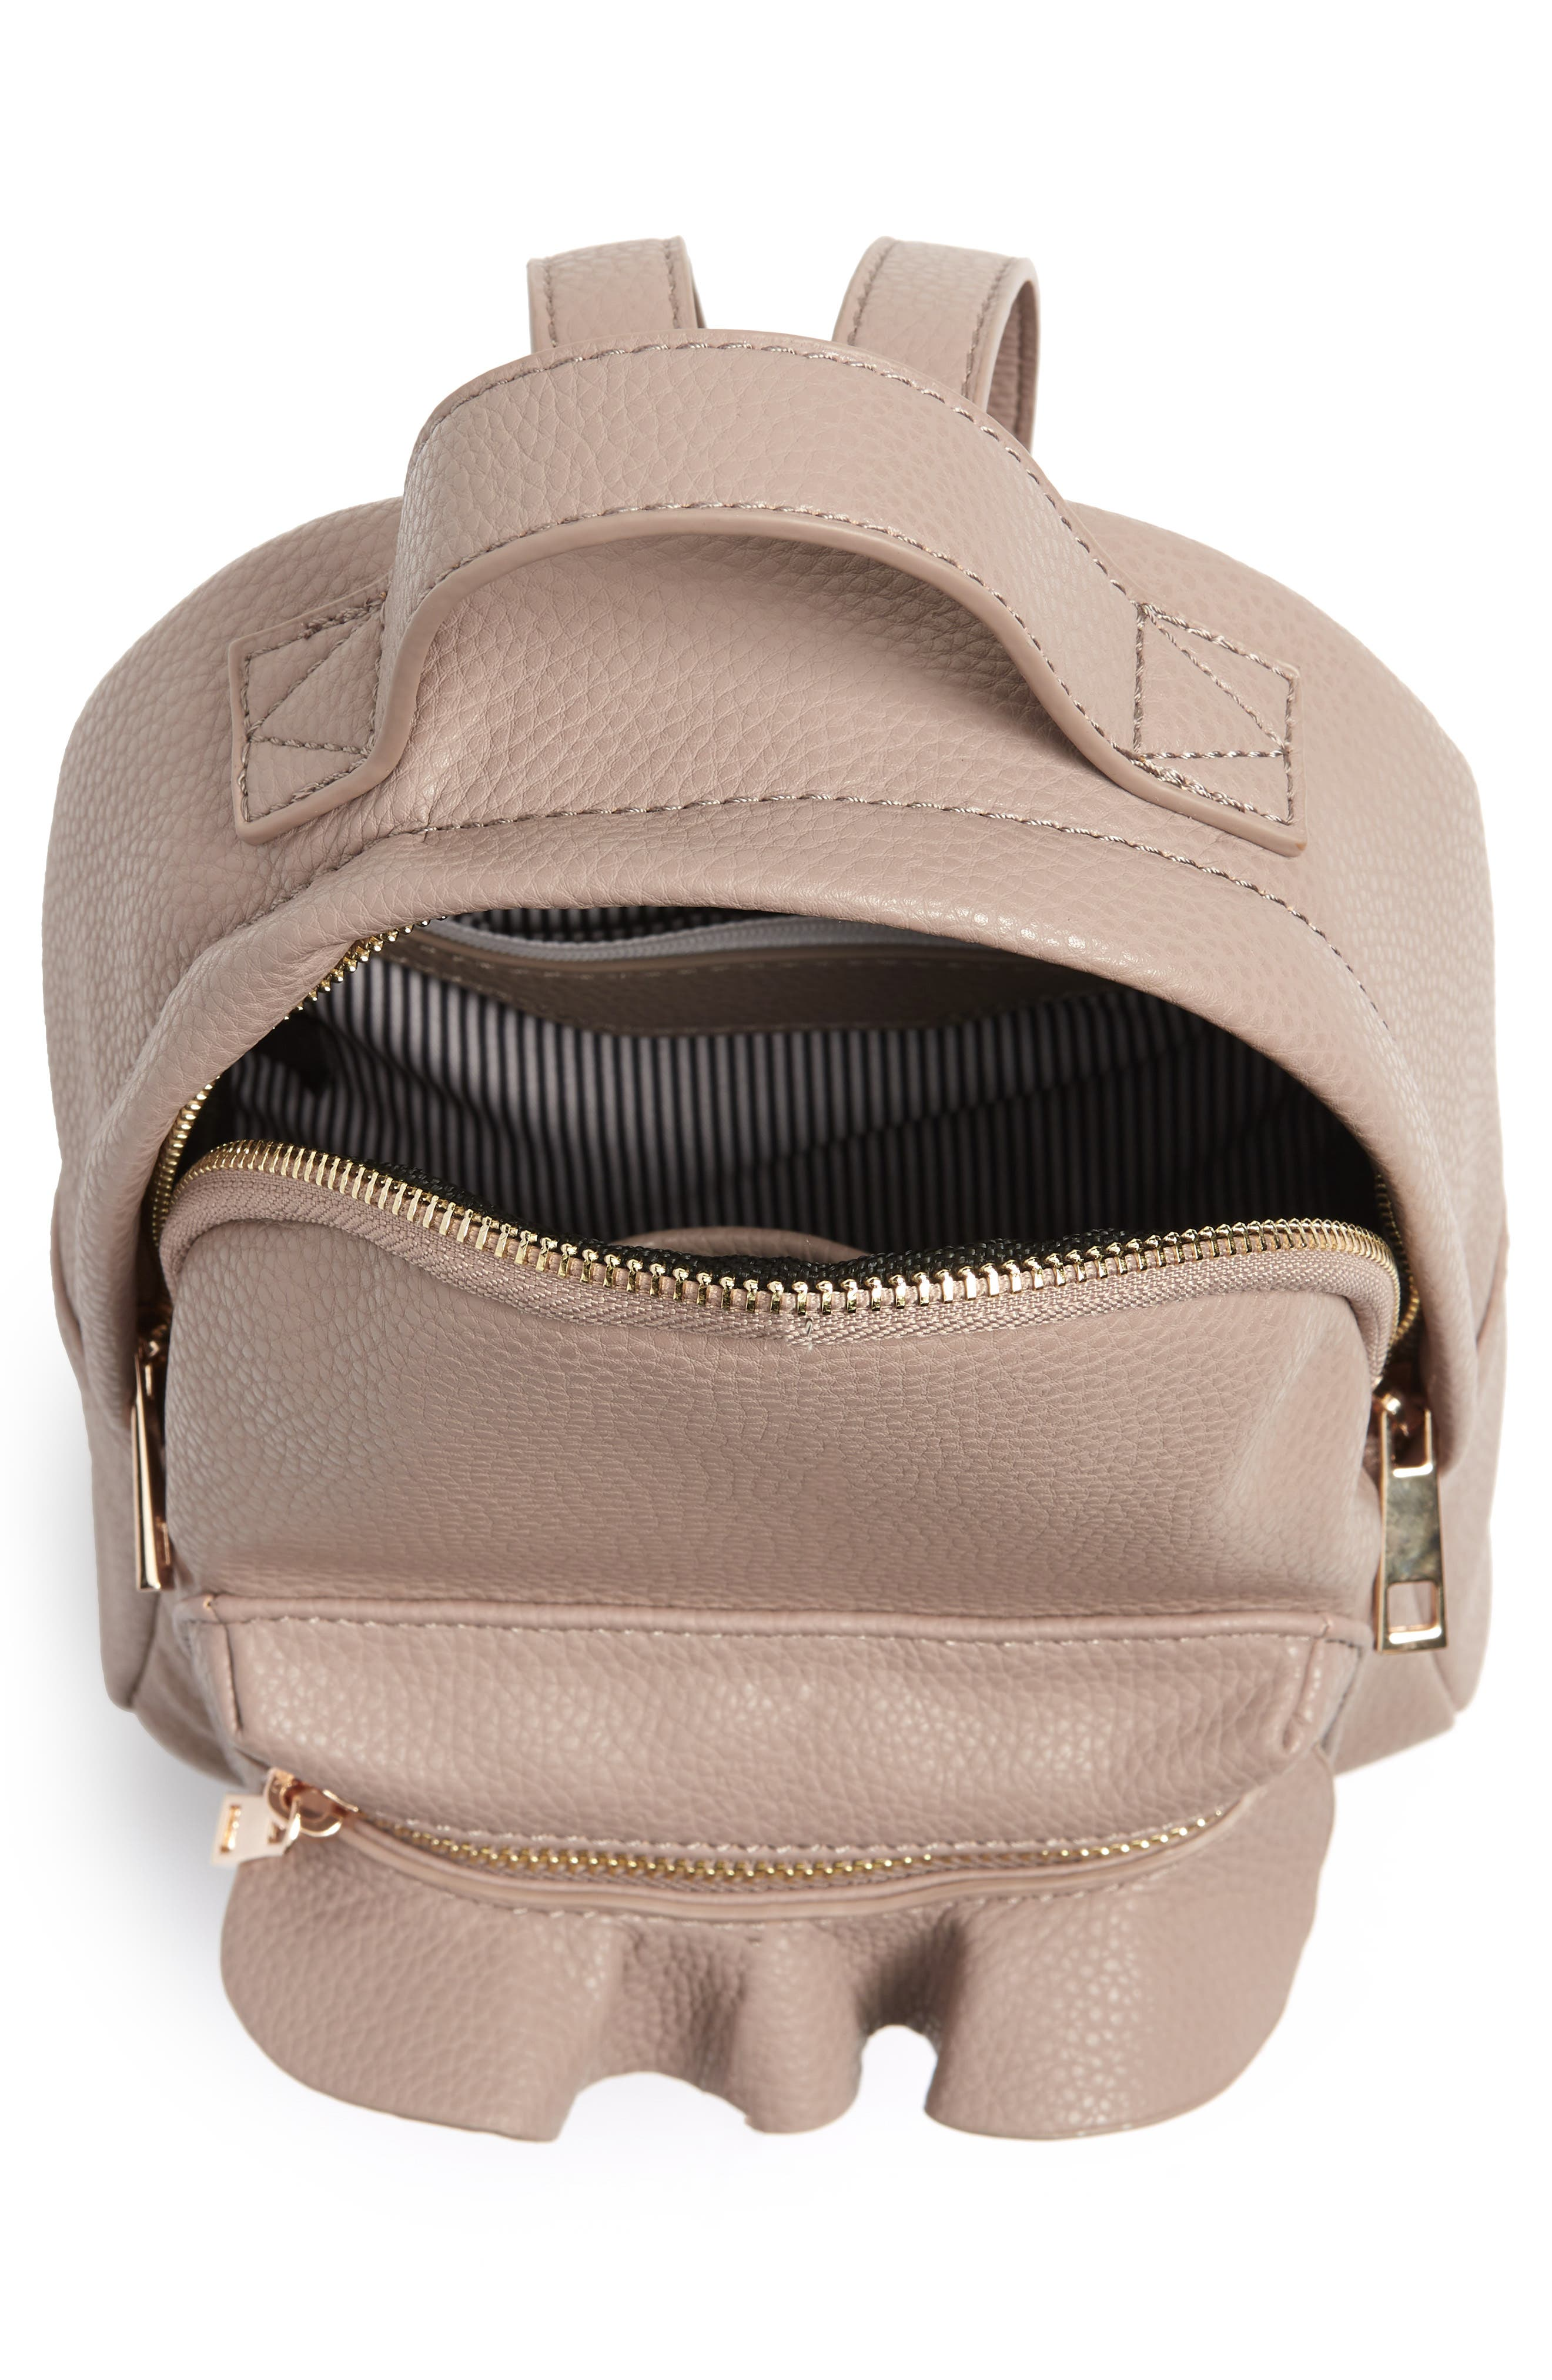 Tracie Mini Faux Leather Backpack,                             Alternate thumbnail 4, color,                             250